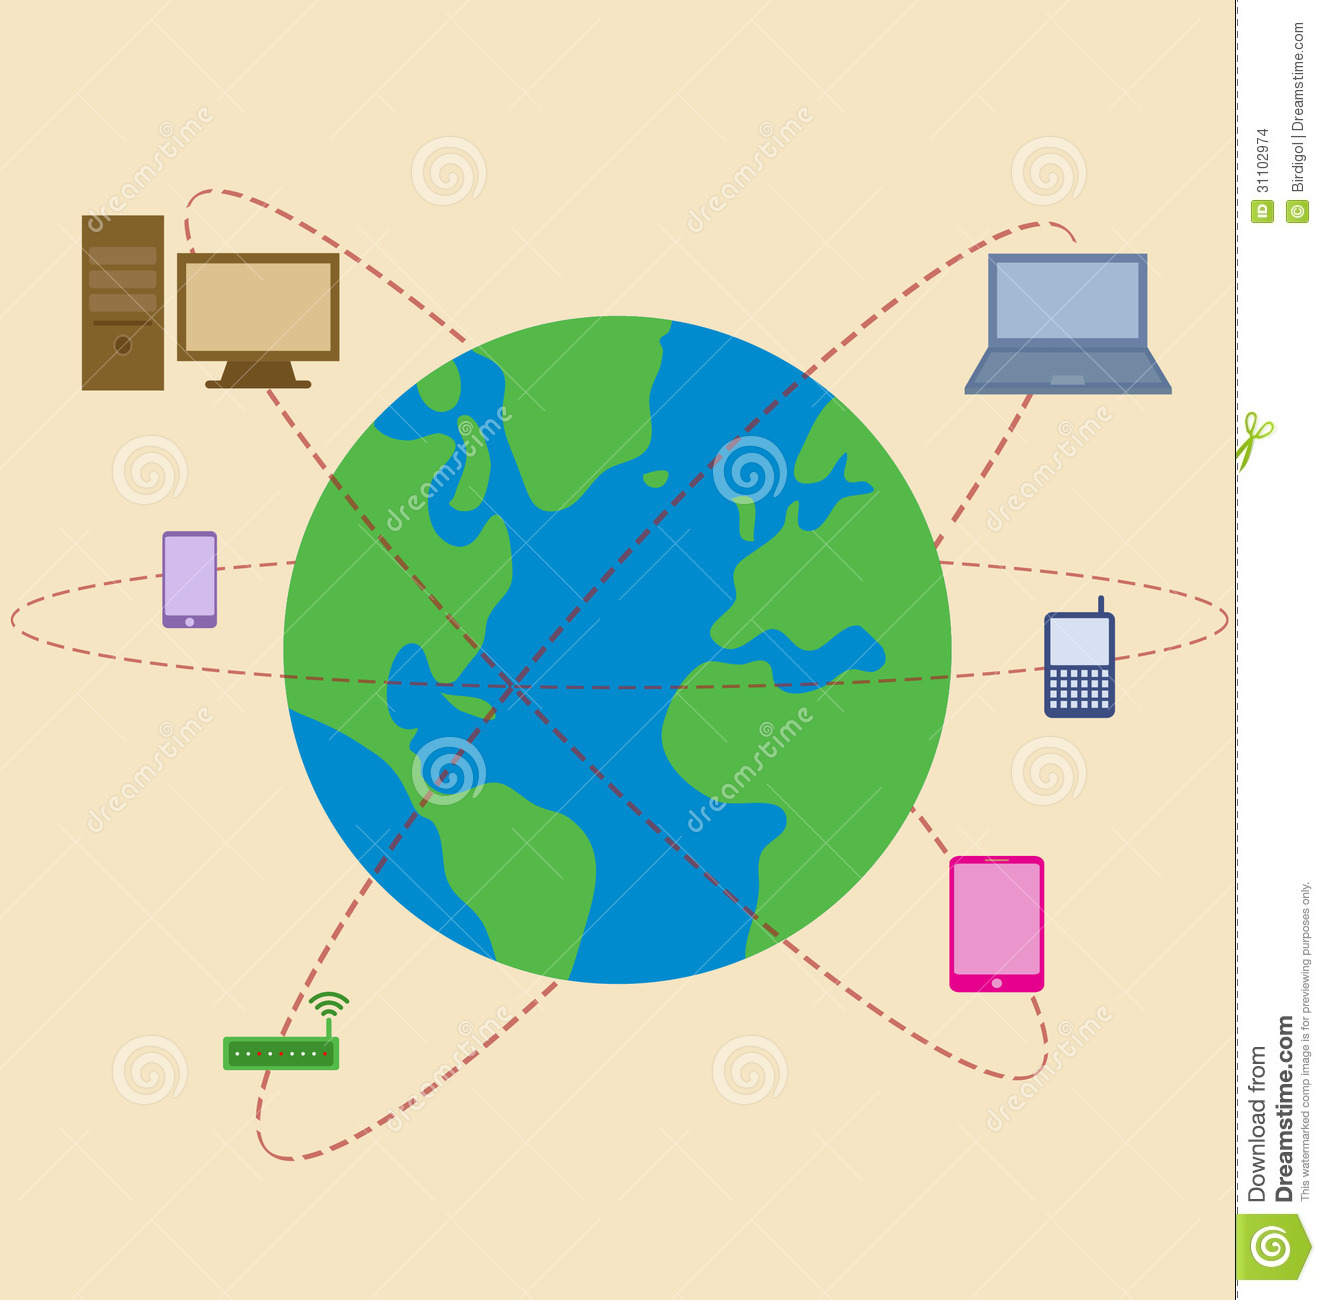 World is surrounded by mobile technology